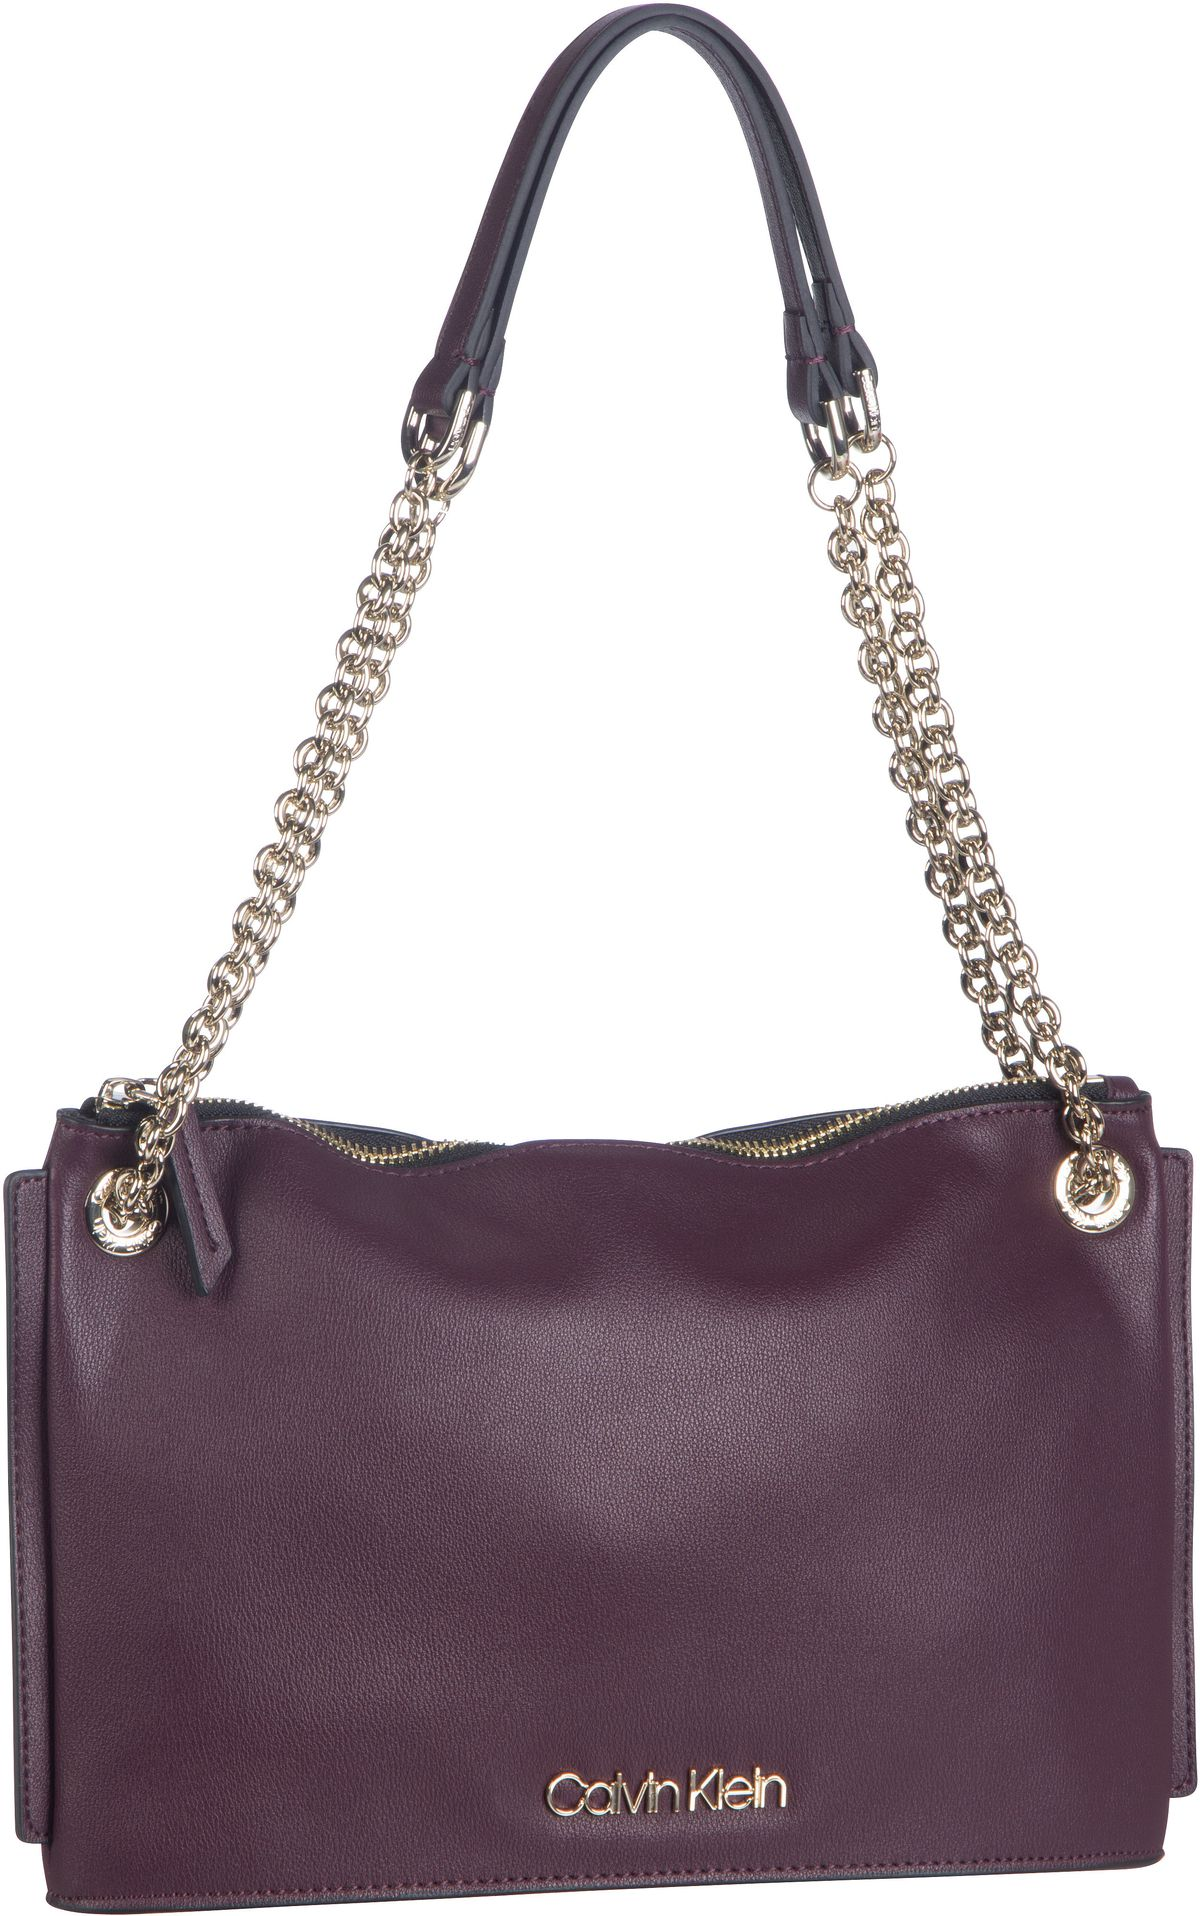 Handtasche Chained Convertible Shoulderbag Merlot